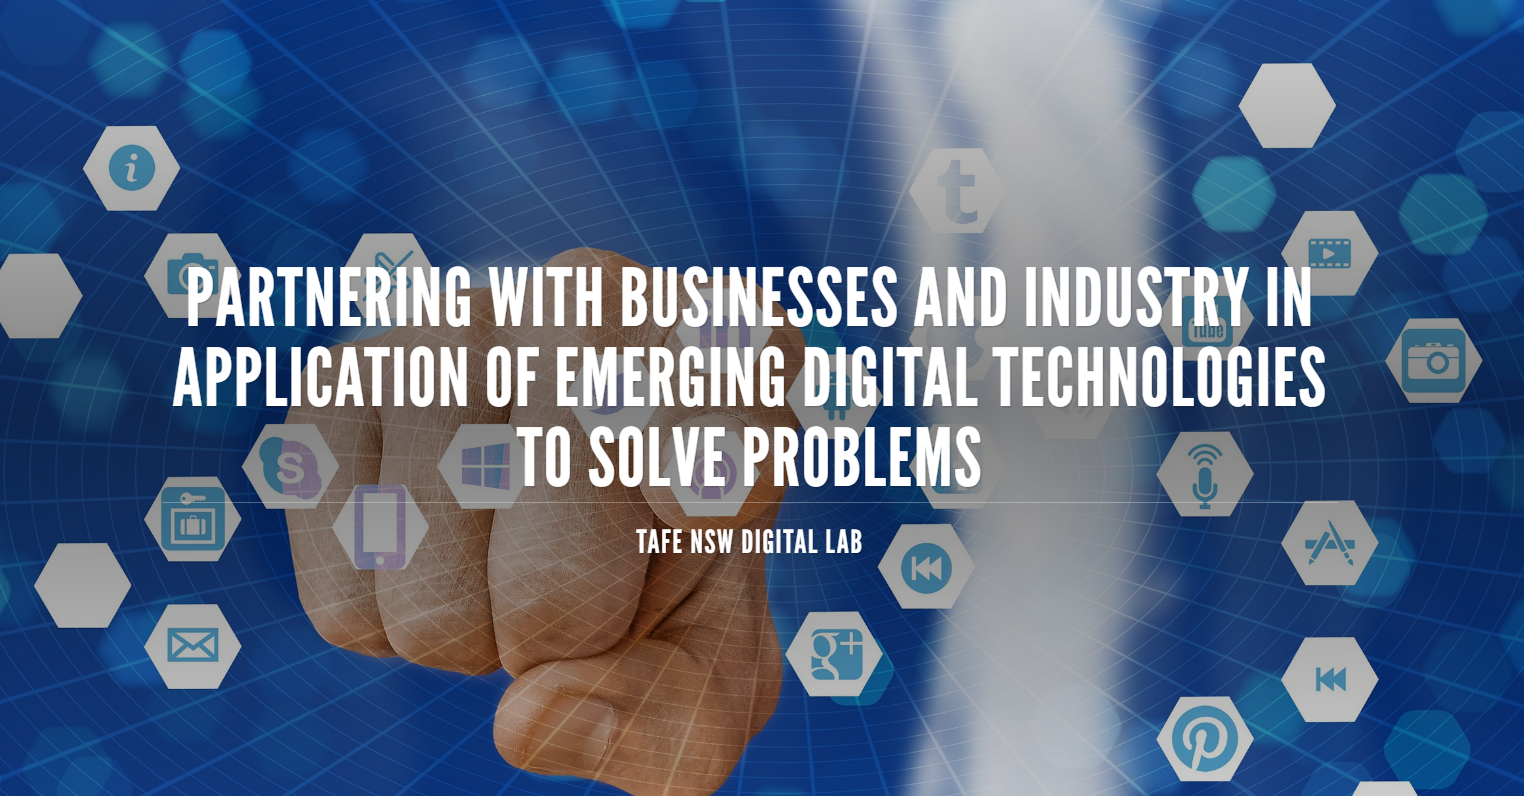 Partnering with Businesses and Industry in Application of Emerging Digital Technologies to Solve Problems